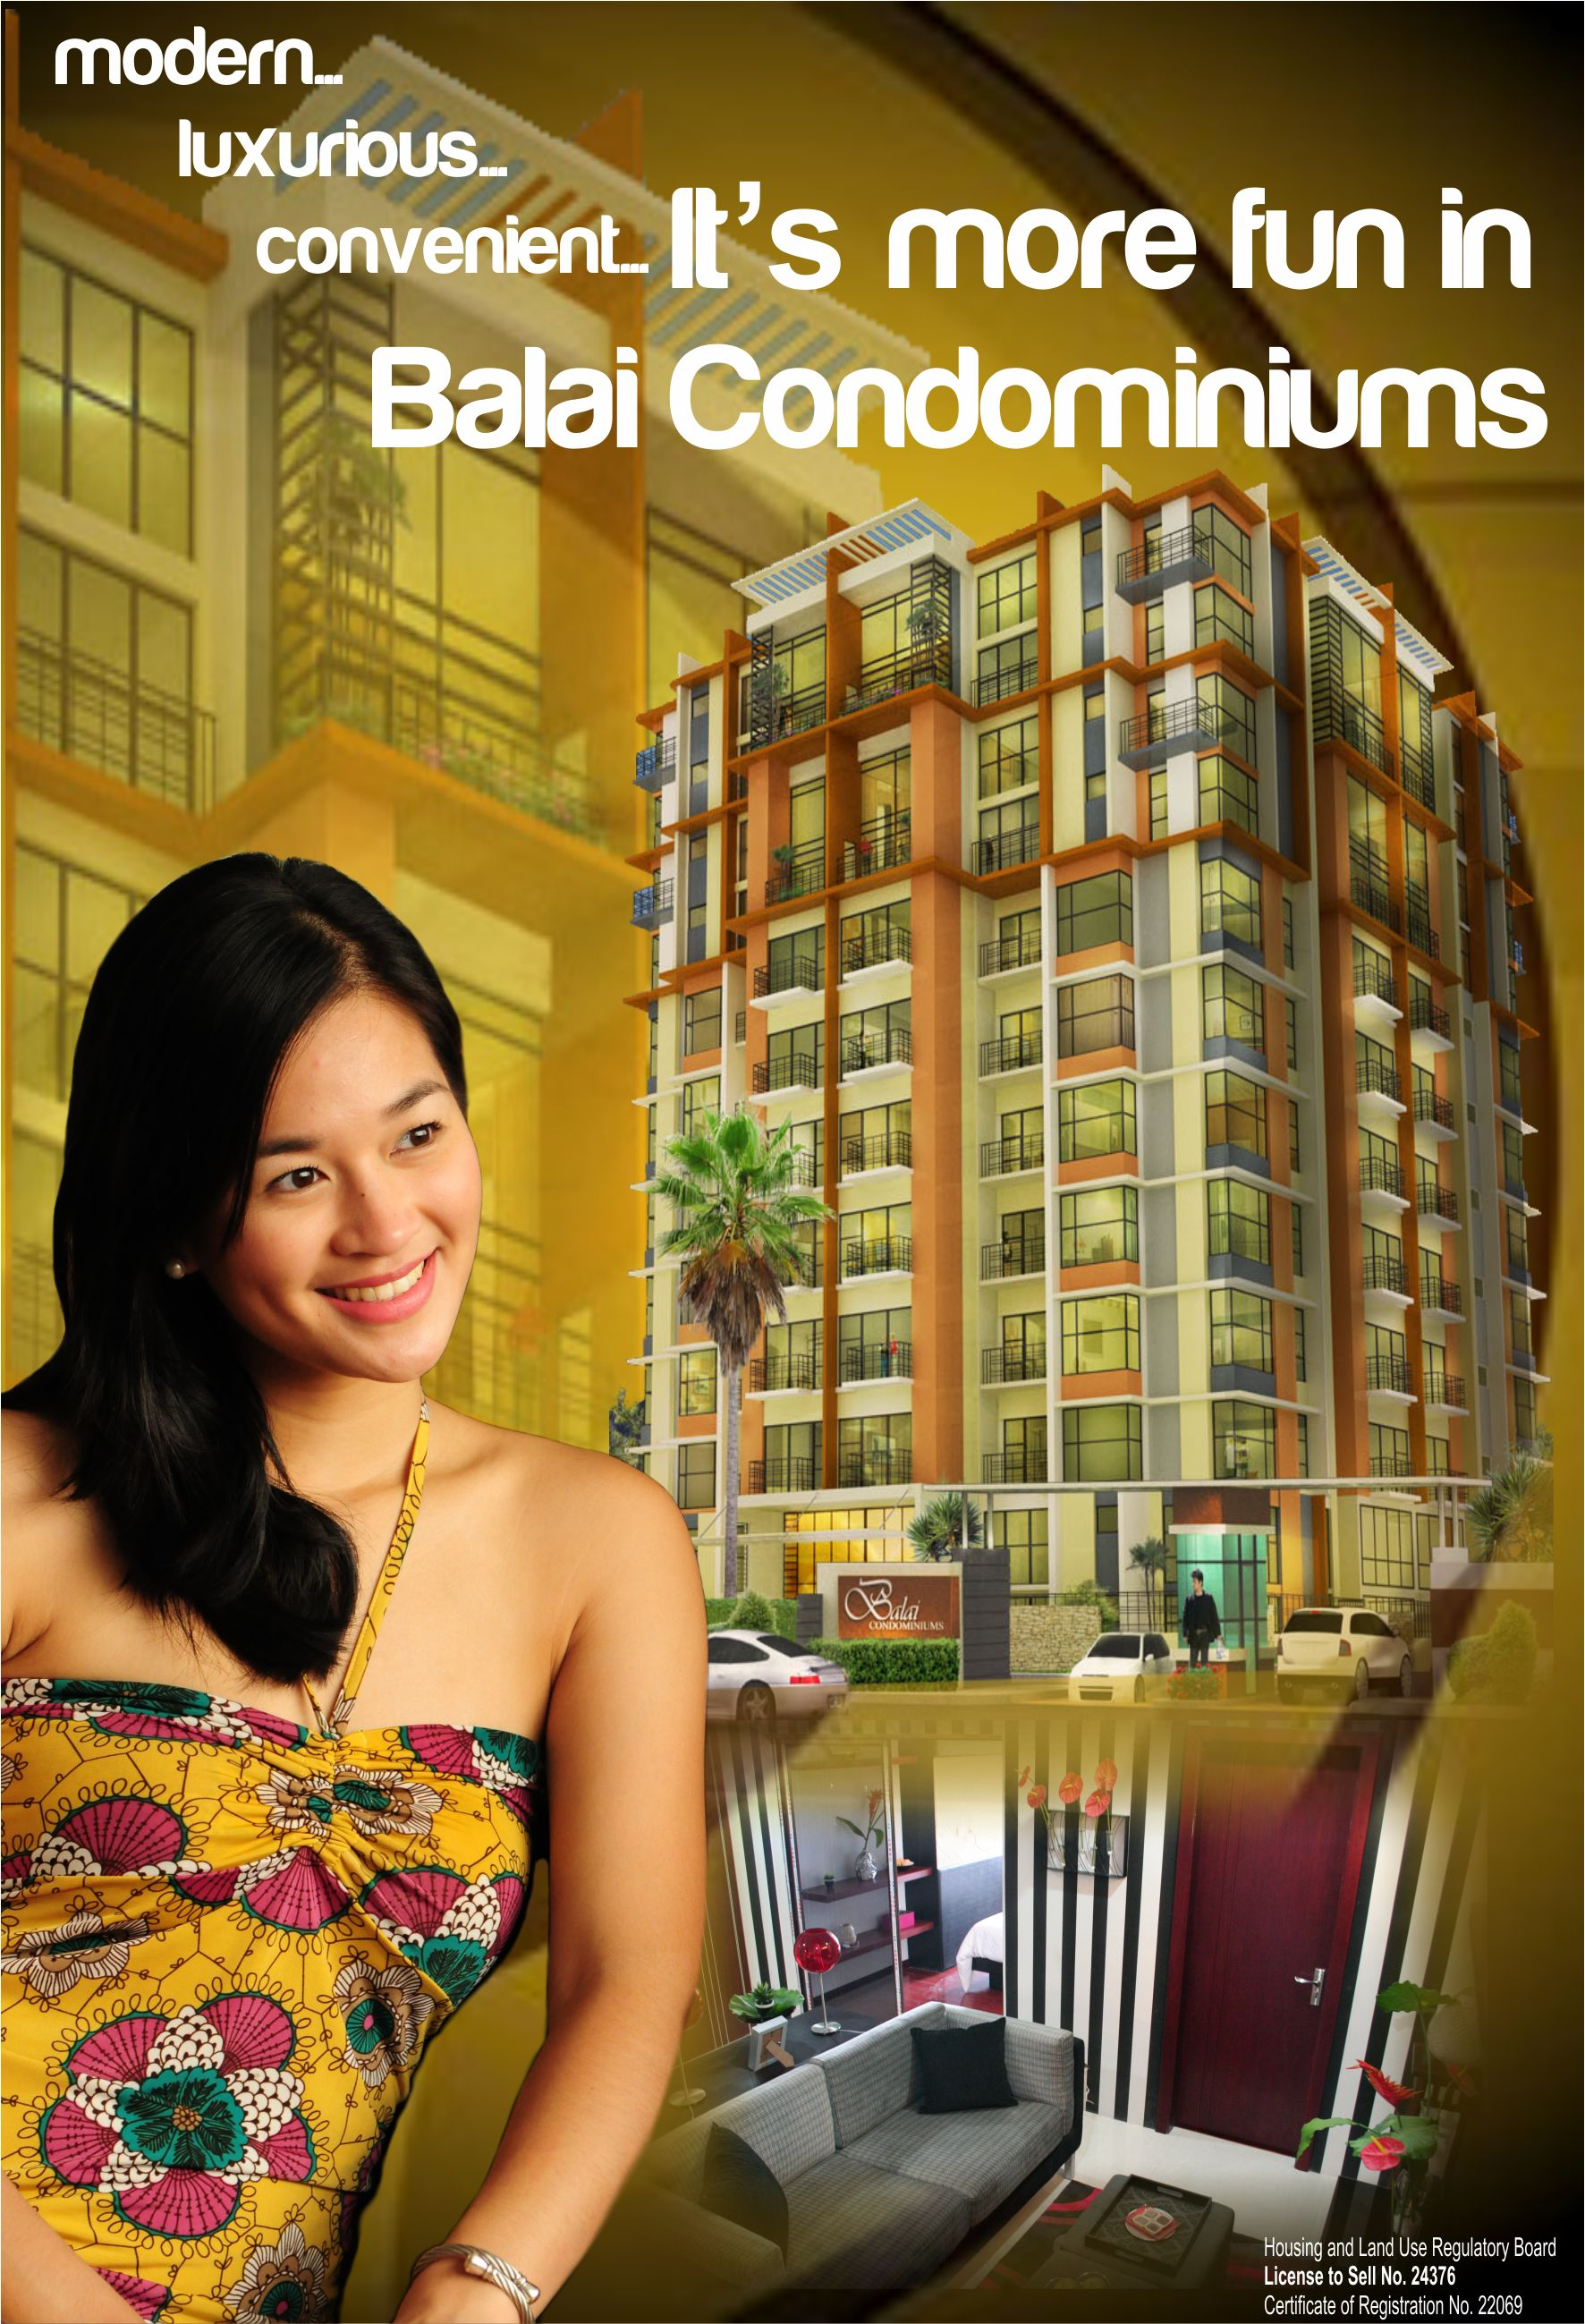 FOR SALE: Balai Condominiums (Ilocos Norte), Philippines